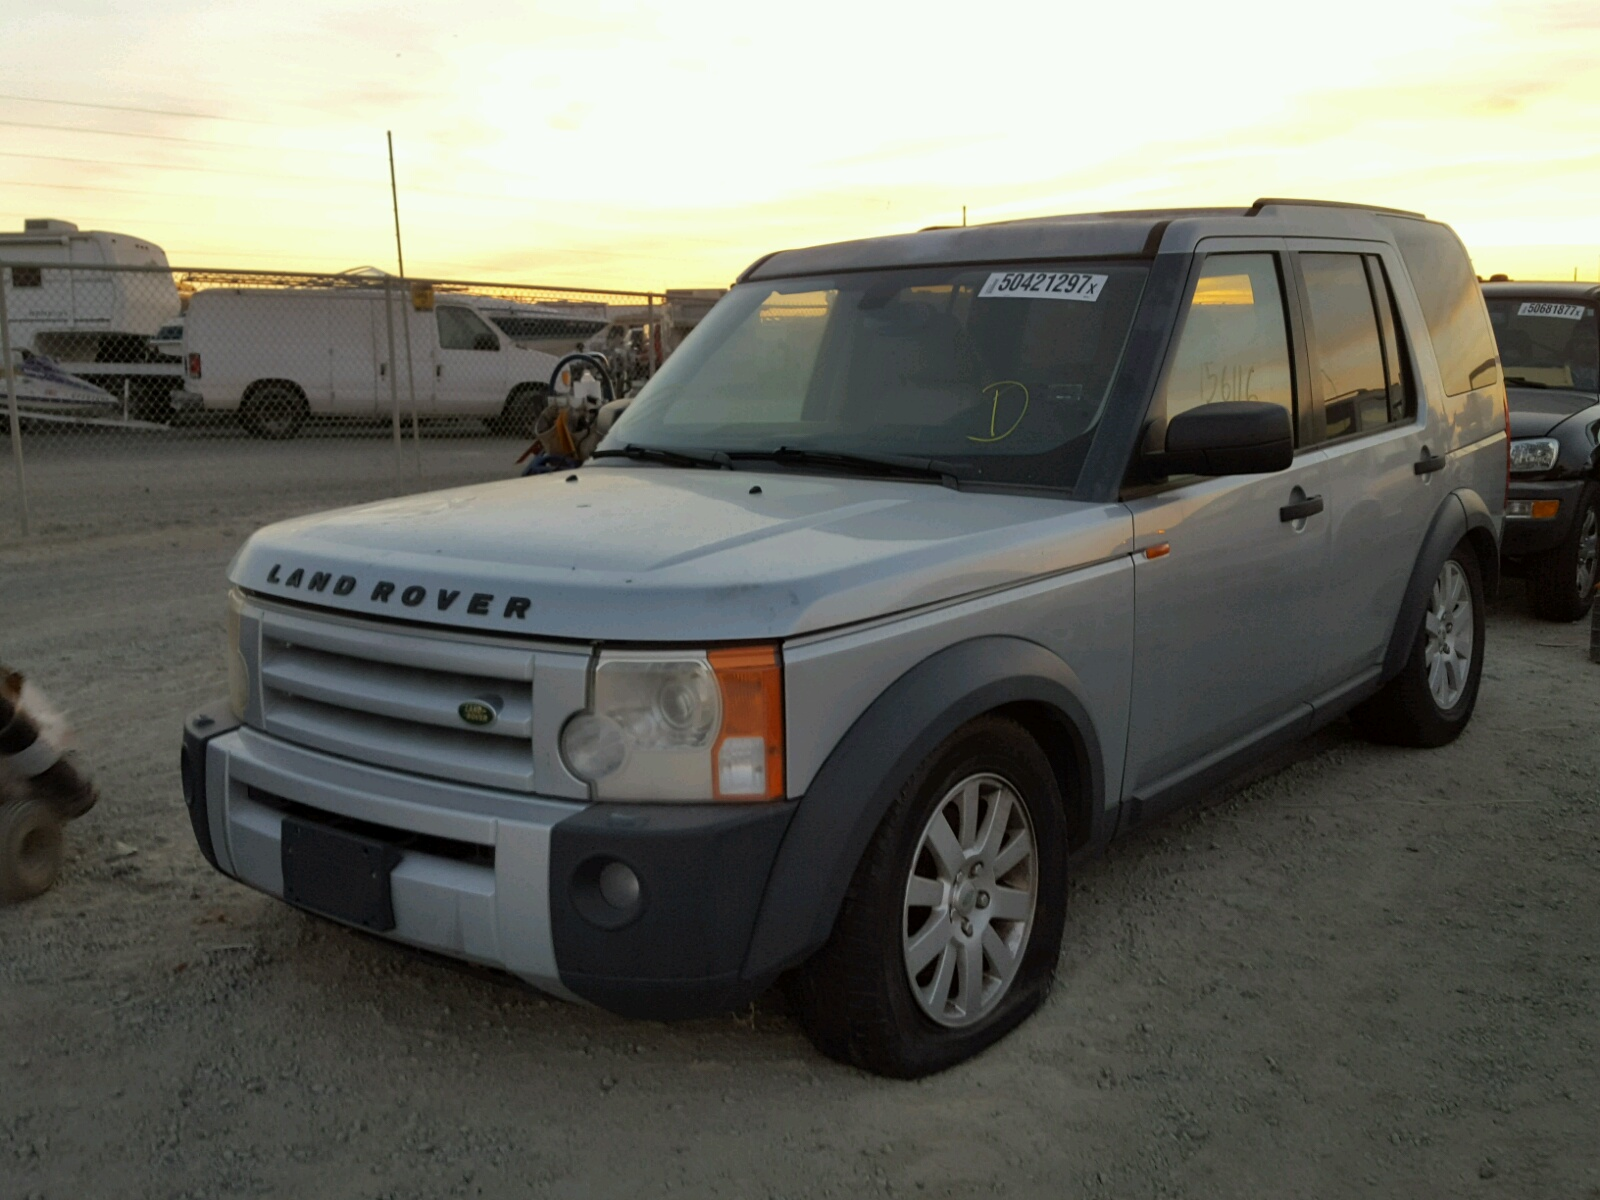 title denver auctions view co land se carfinder sale en online south landrover salvage for rover auto lot white in on copart vehicle left